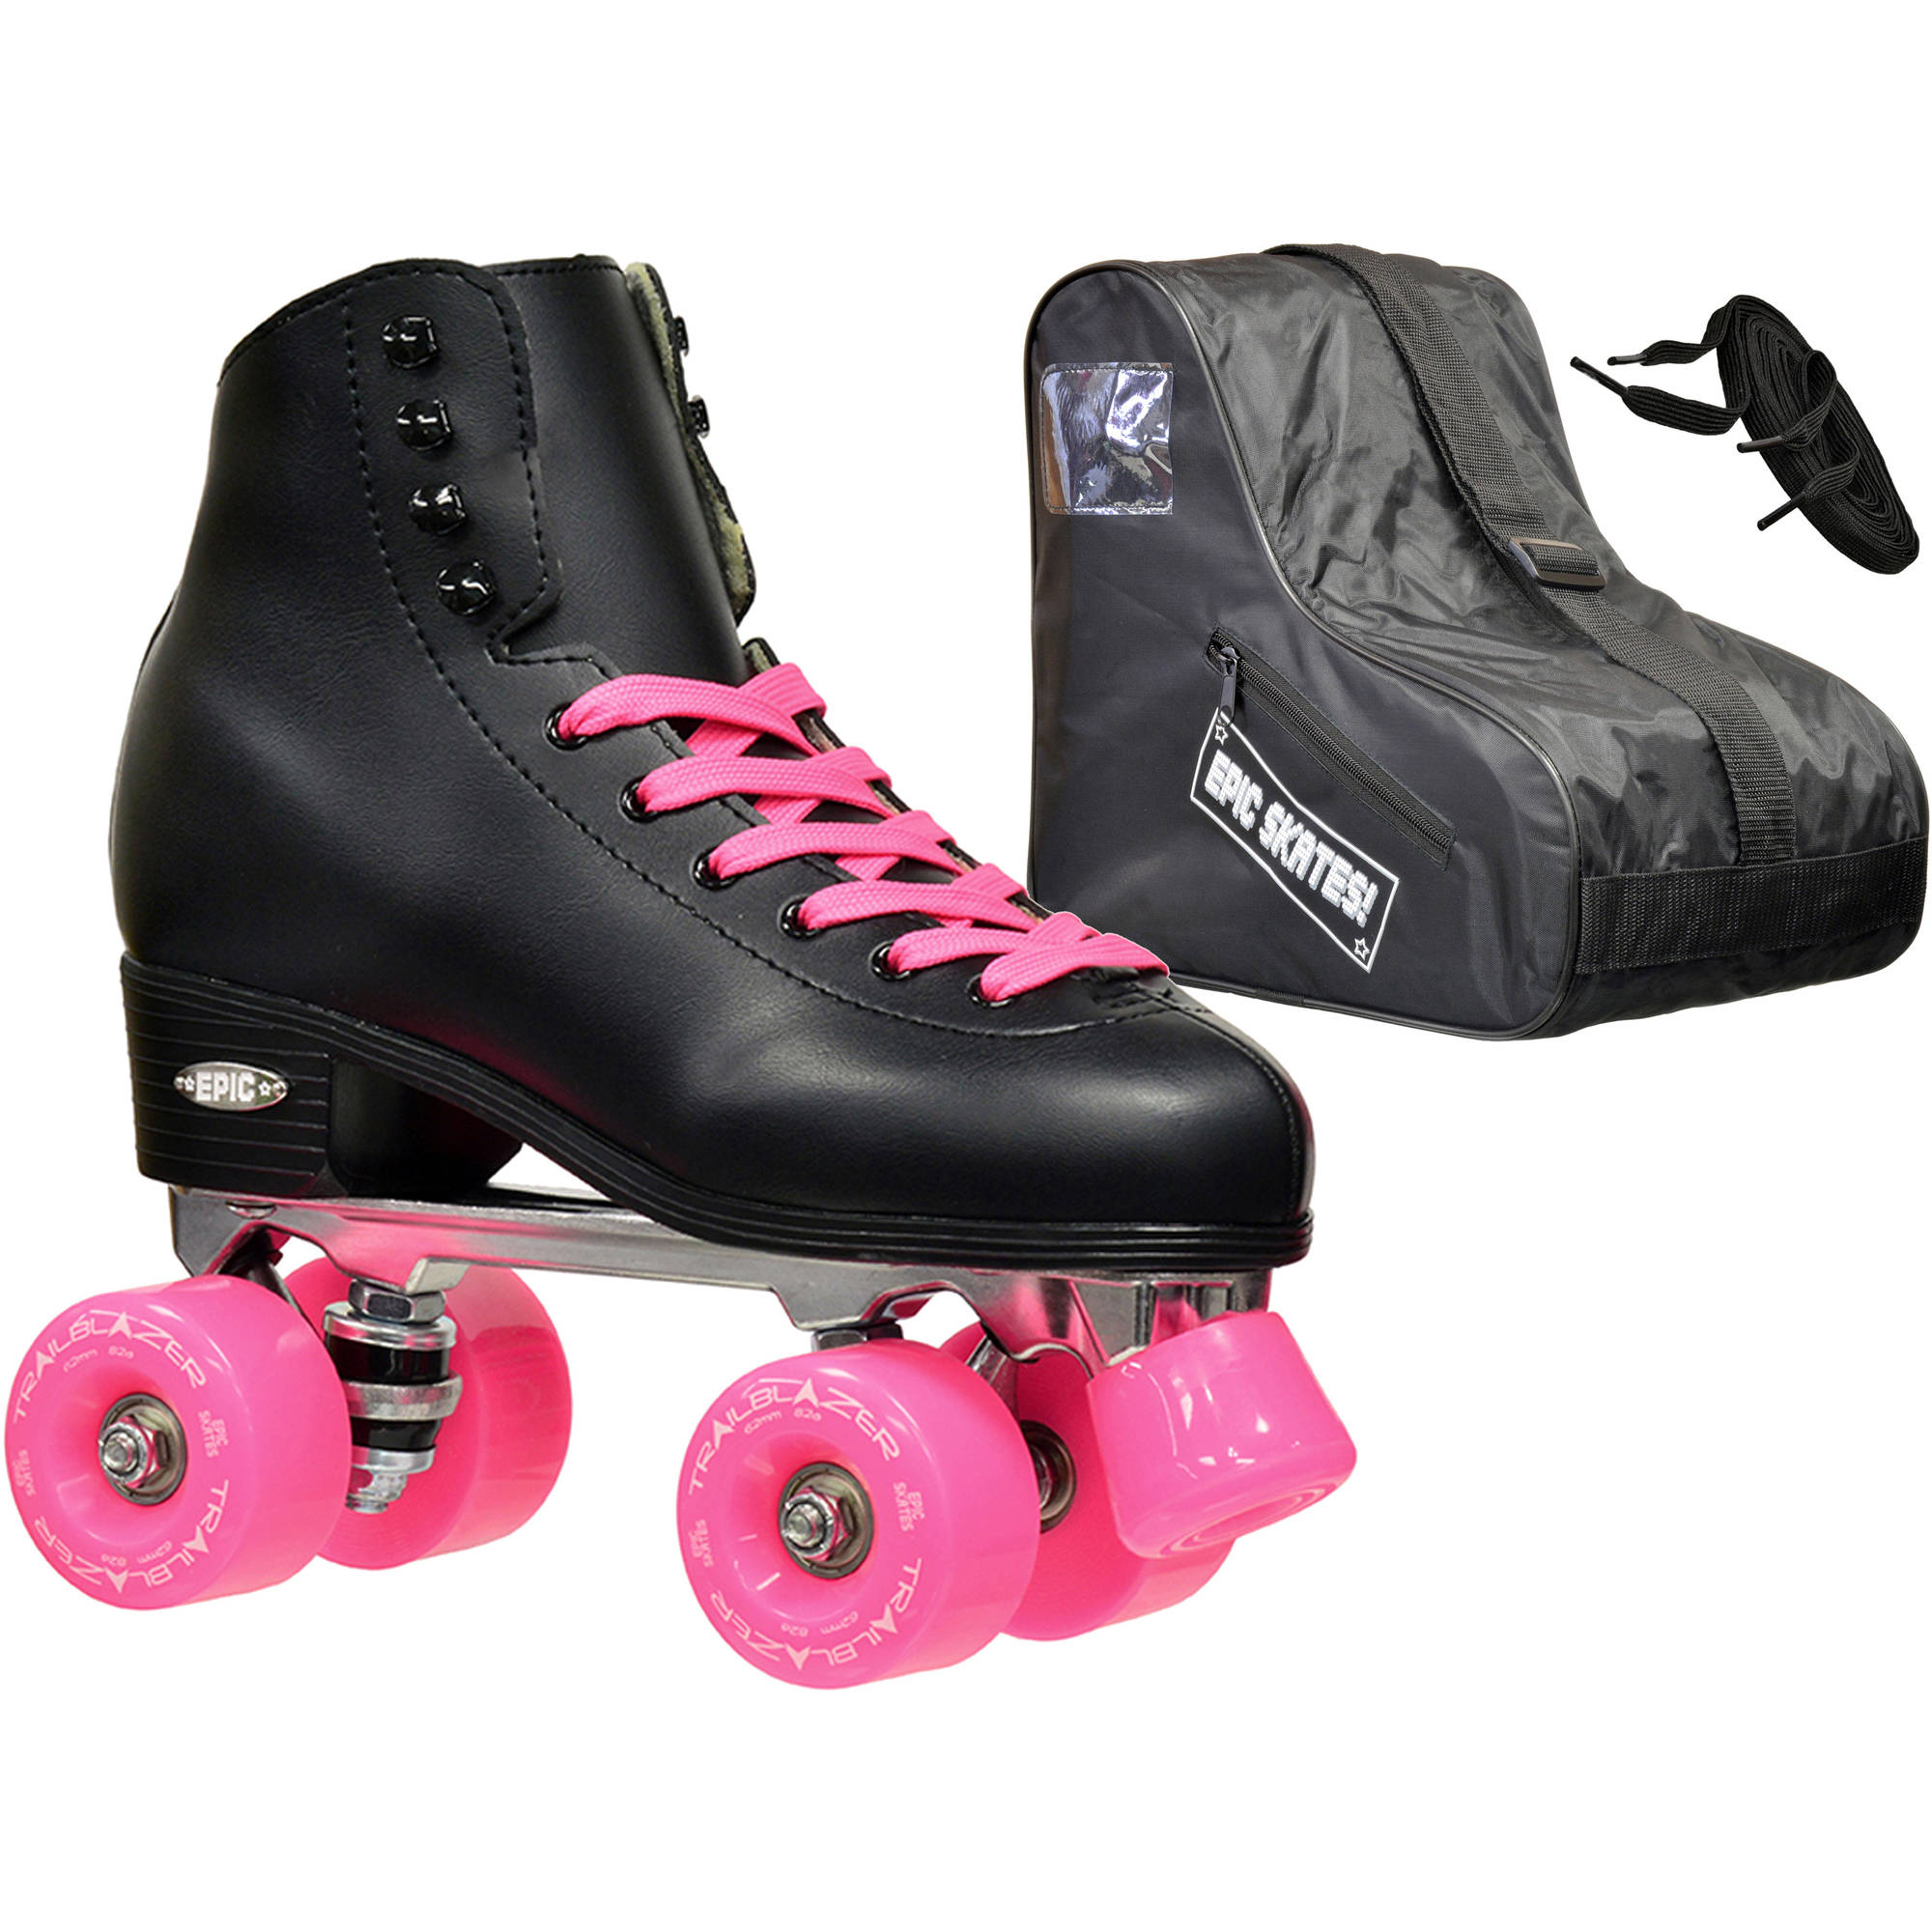 Epic Classic Black and Pink Quad Roller Skates Package